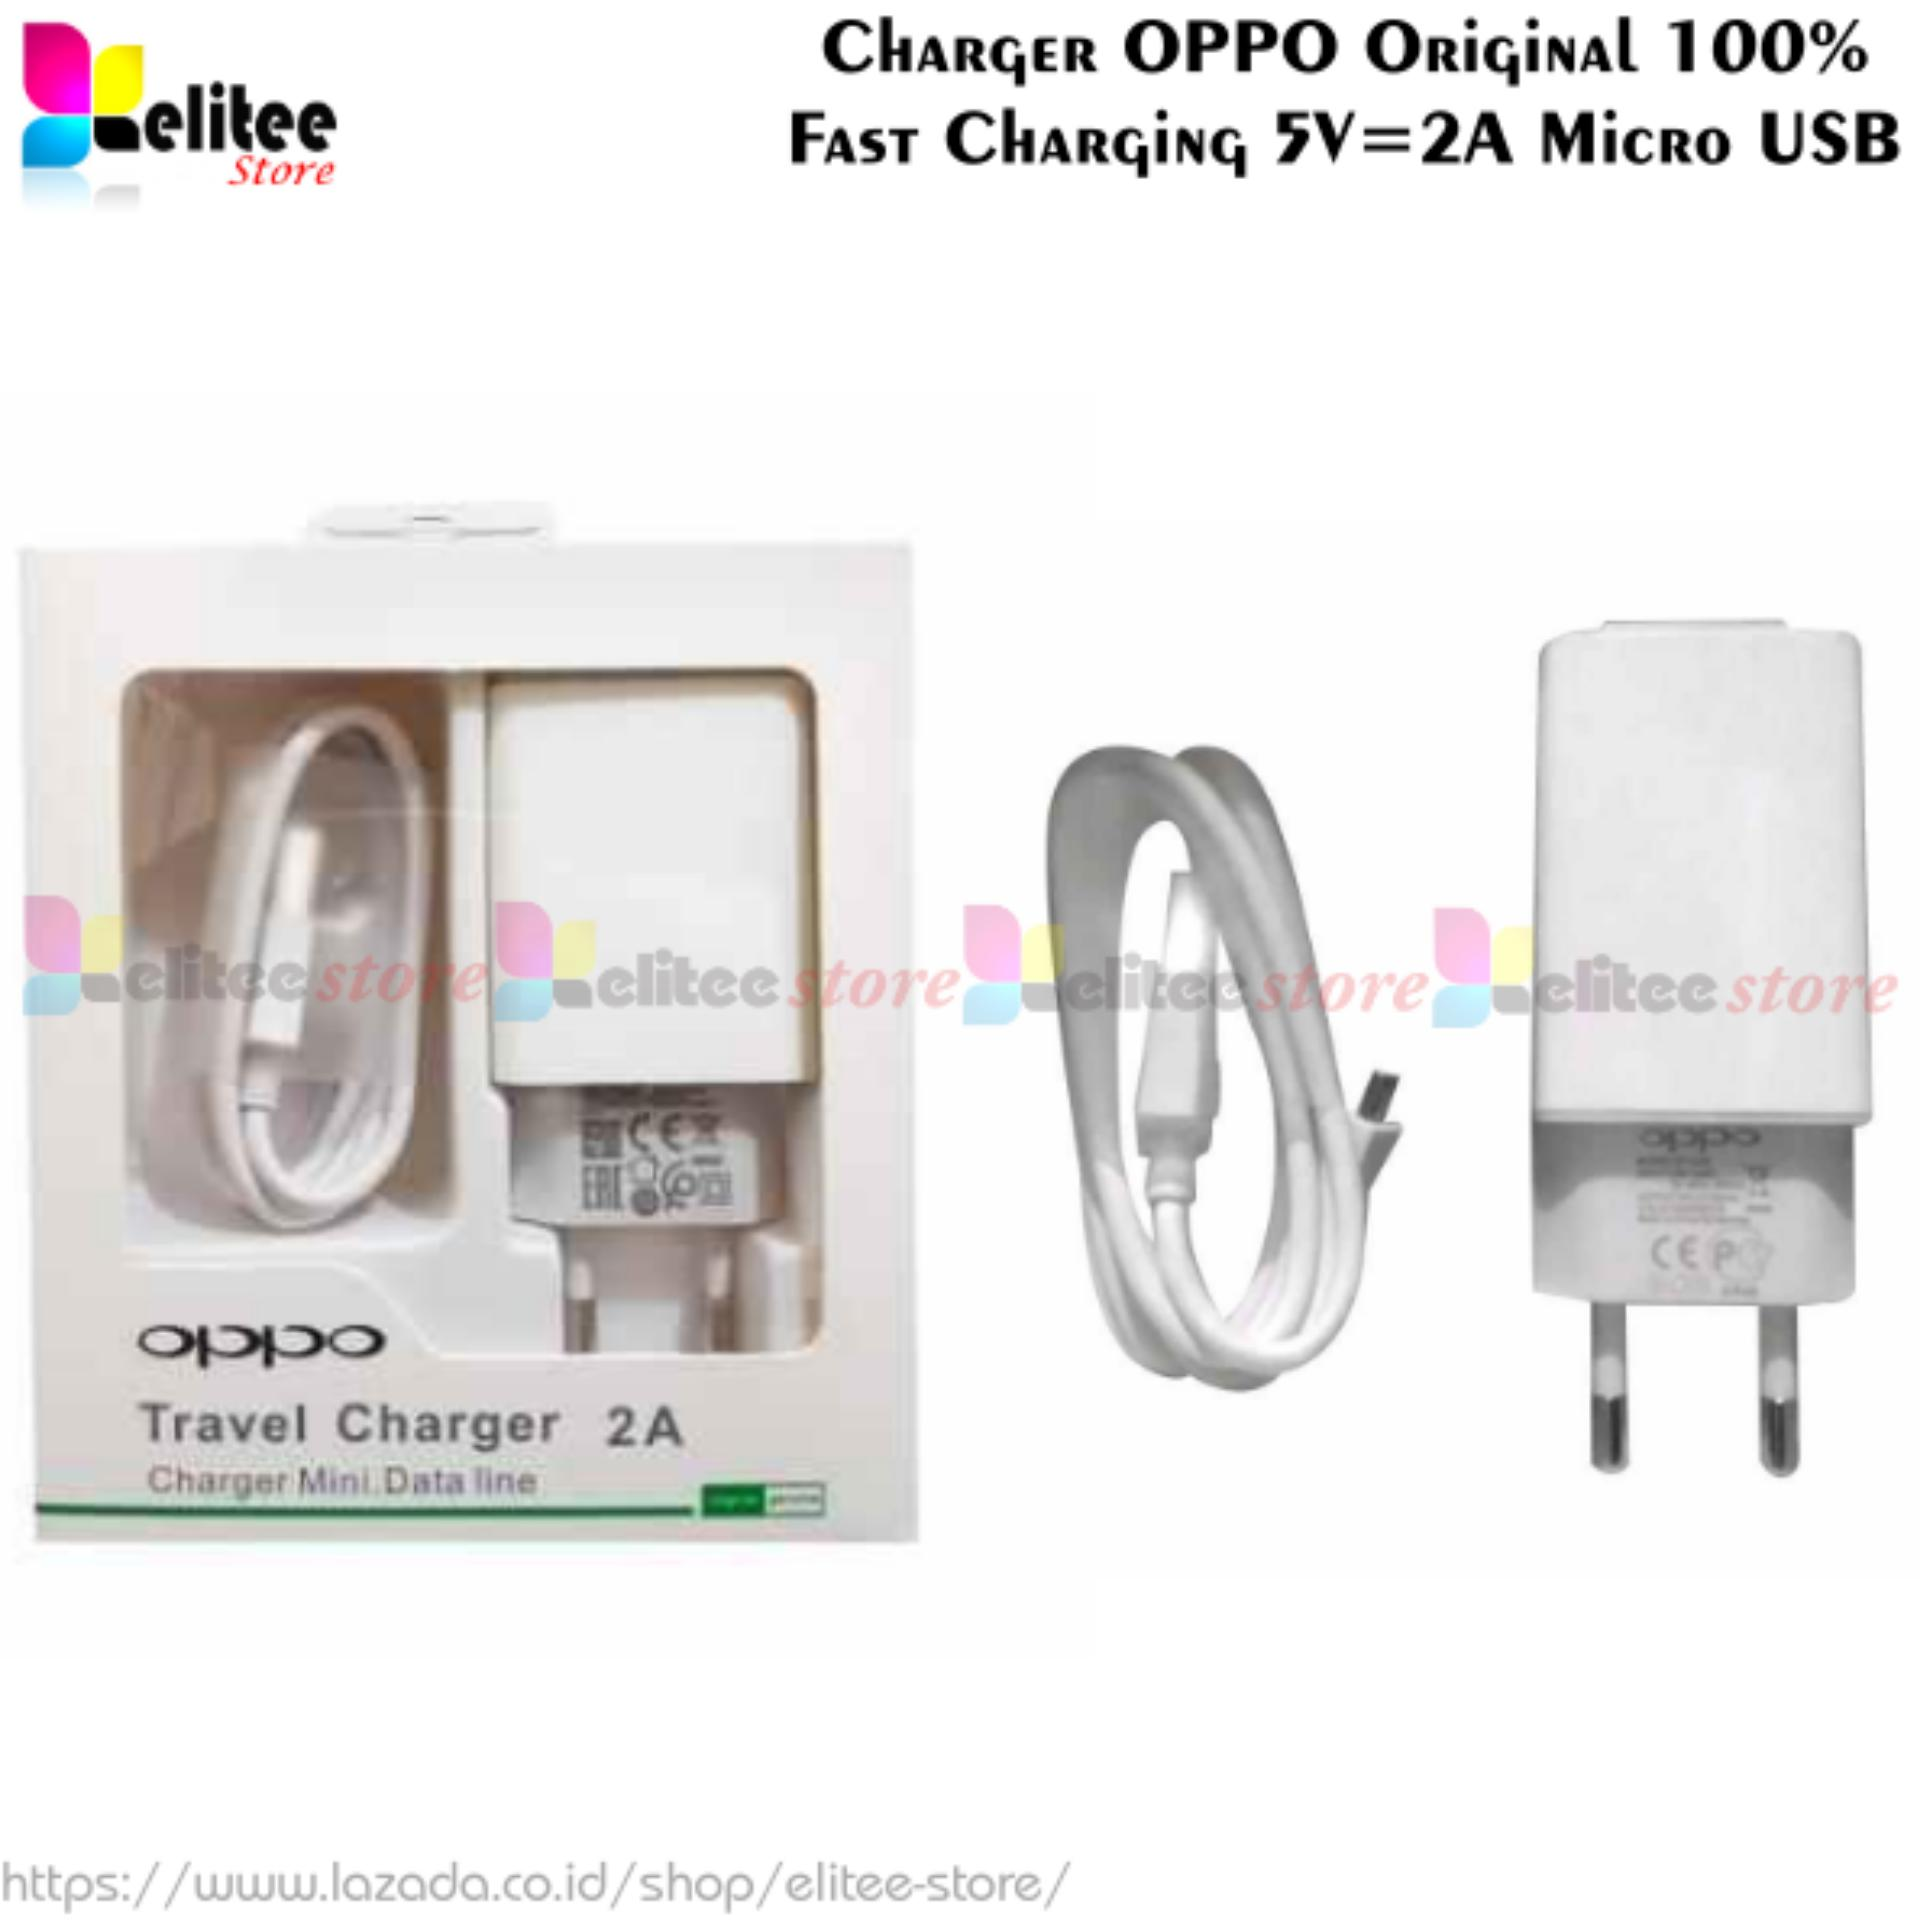 Travel Charger Oppo Original 2A Fast Charging AK933GB - Charger Oppo F3 F3 Plus F3plus F1